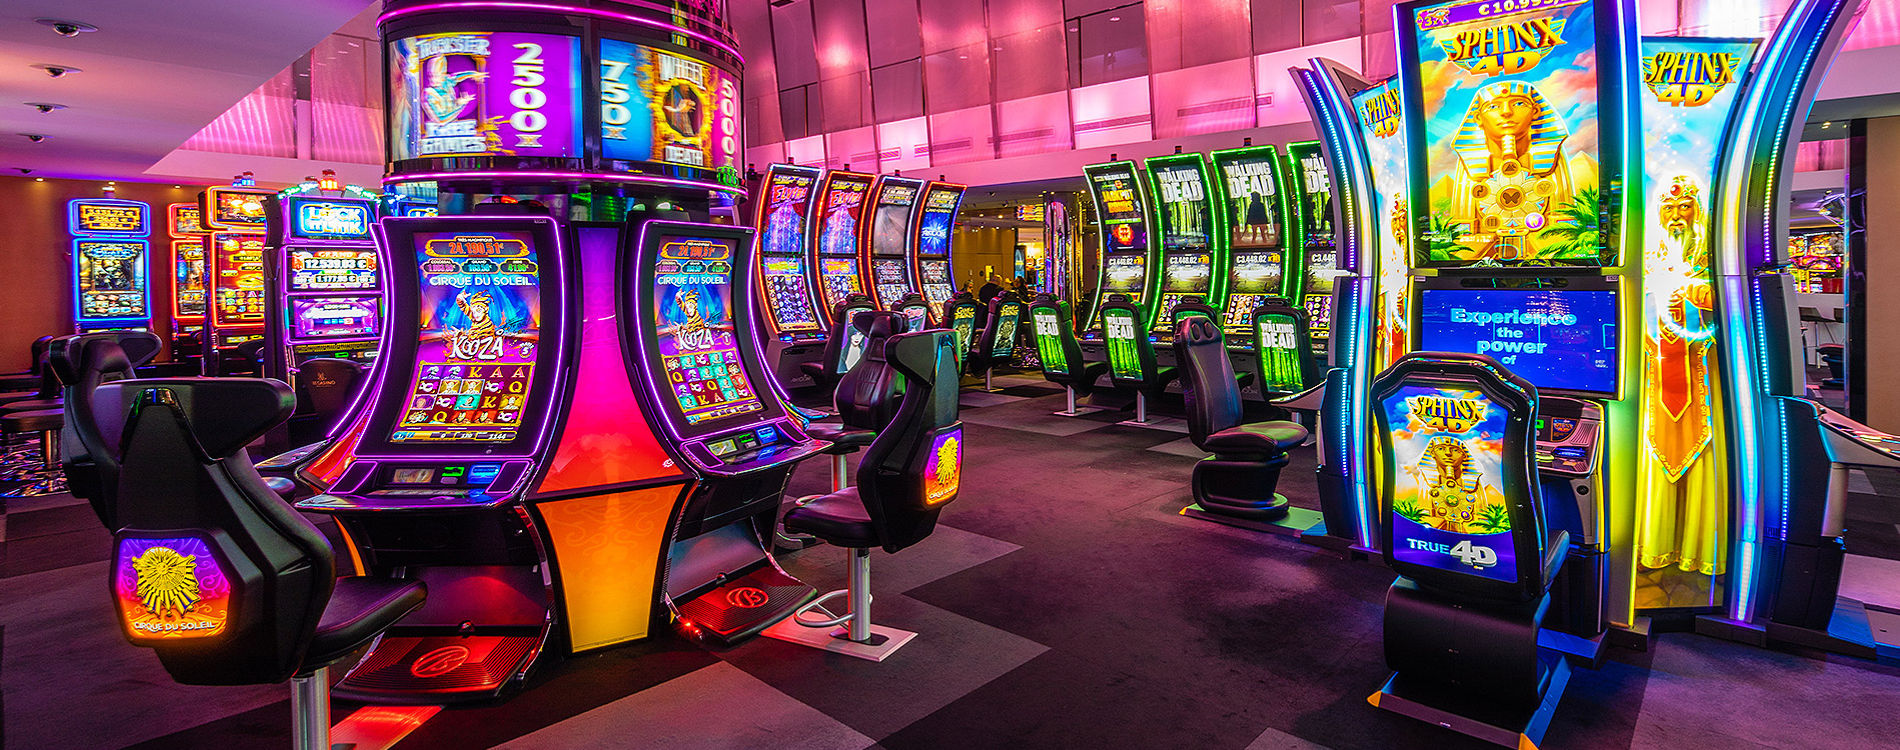 What are the Features and Types of the slots?